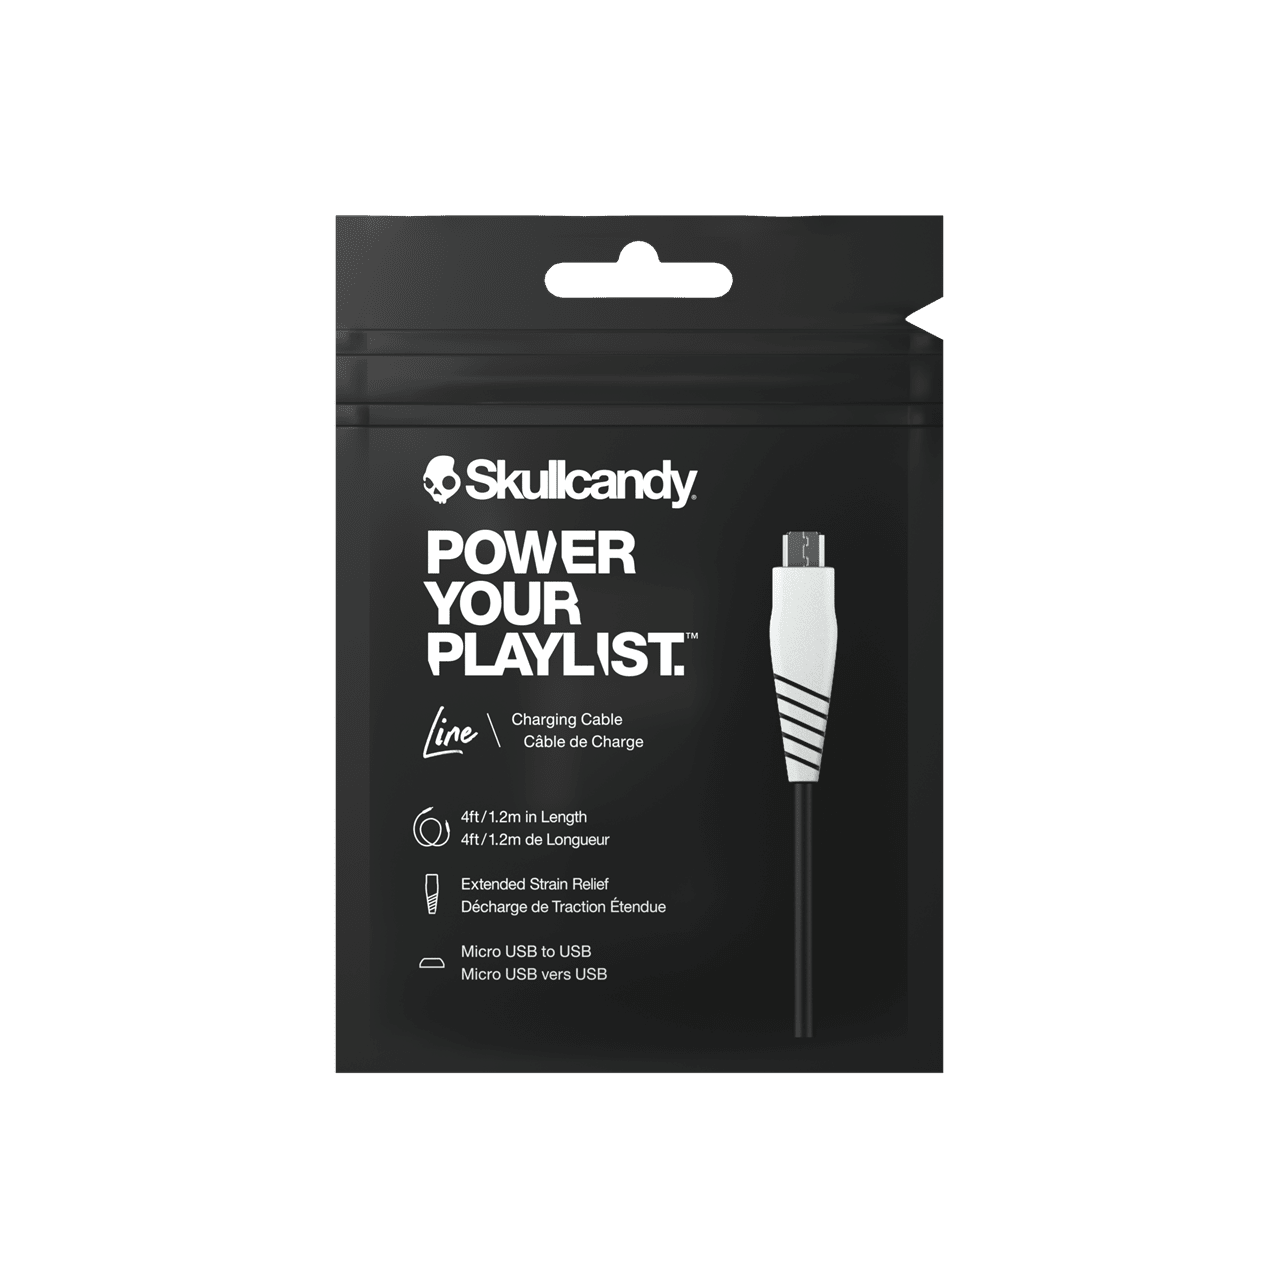 Skullcandy Round Micro Usb Black White Charge Sync Cable 1 2m Accessories Free Shipping Over 20 Hmv Store